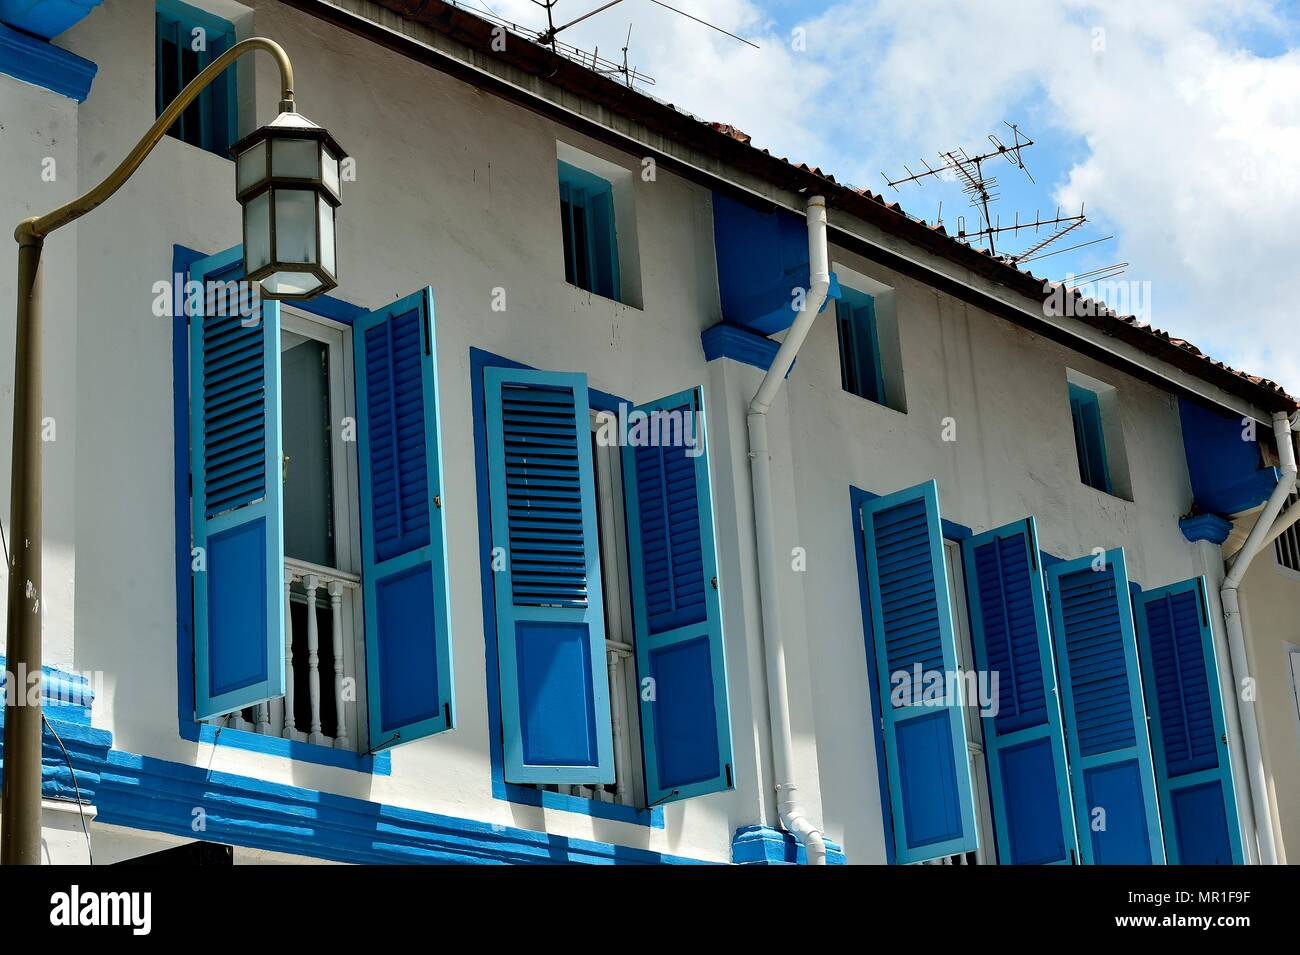 Vintage windows with antique blue wooden shutters on the exterior of a row of heritage Peranakan or Straits Chinese shophouses in historic Chinatown - Stock Image